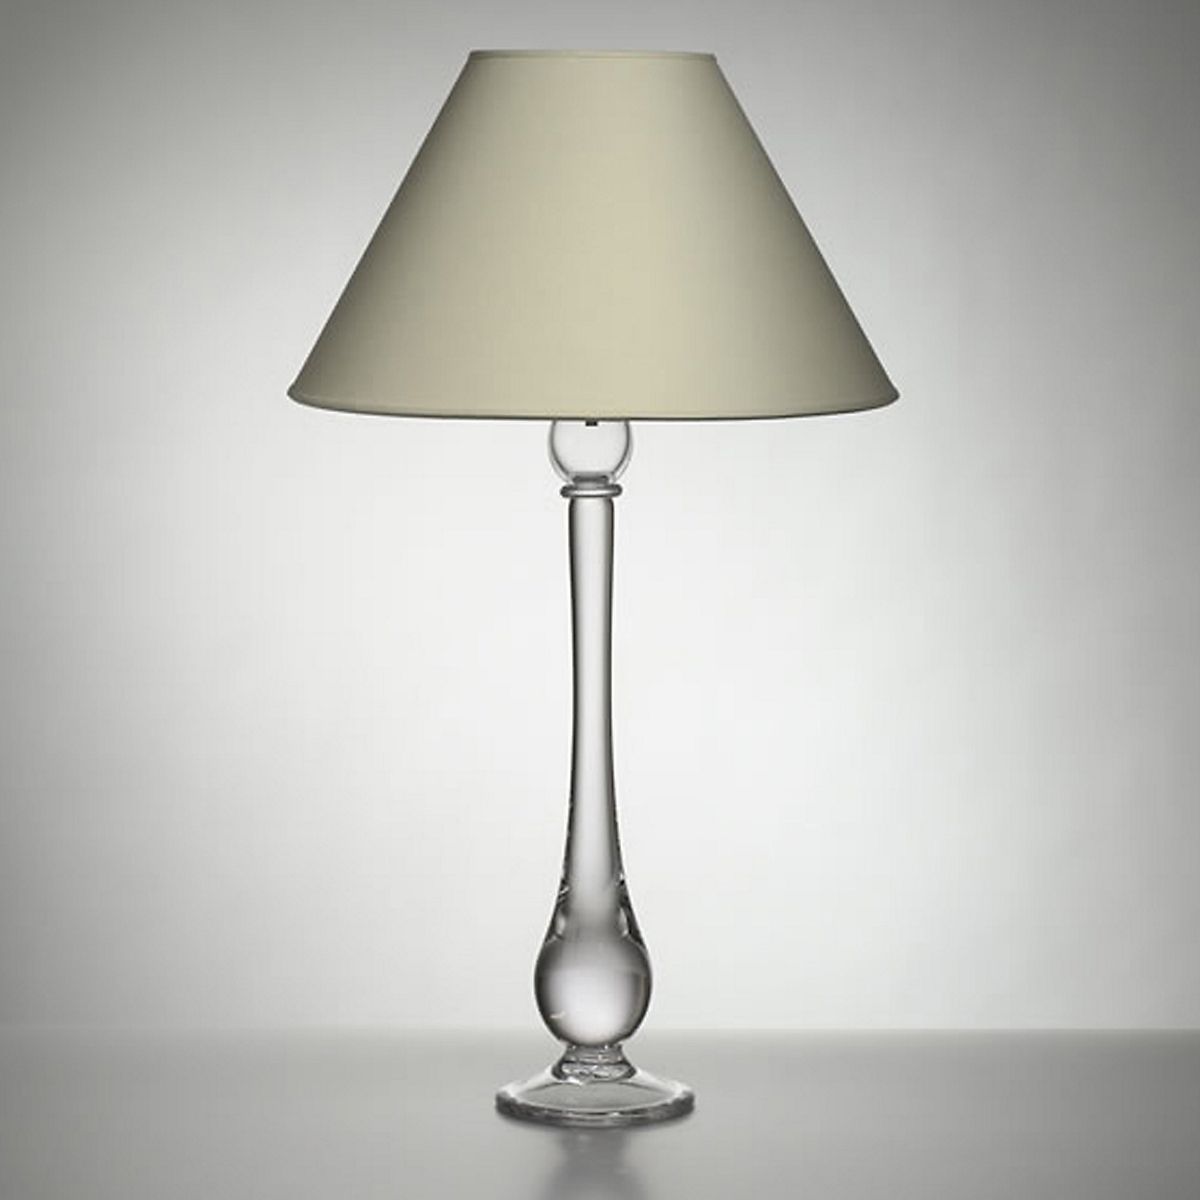 Simon Pearce Pomfret Table Lamp, Tall